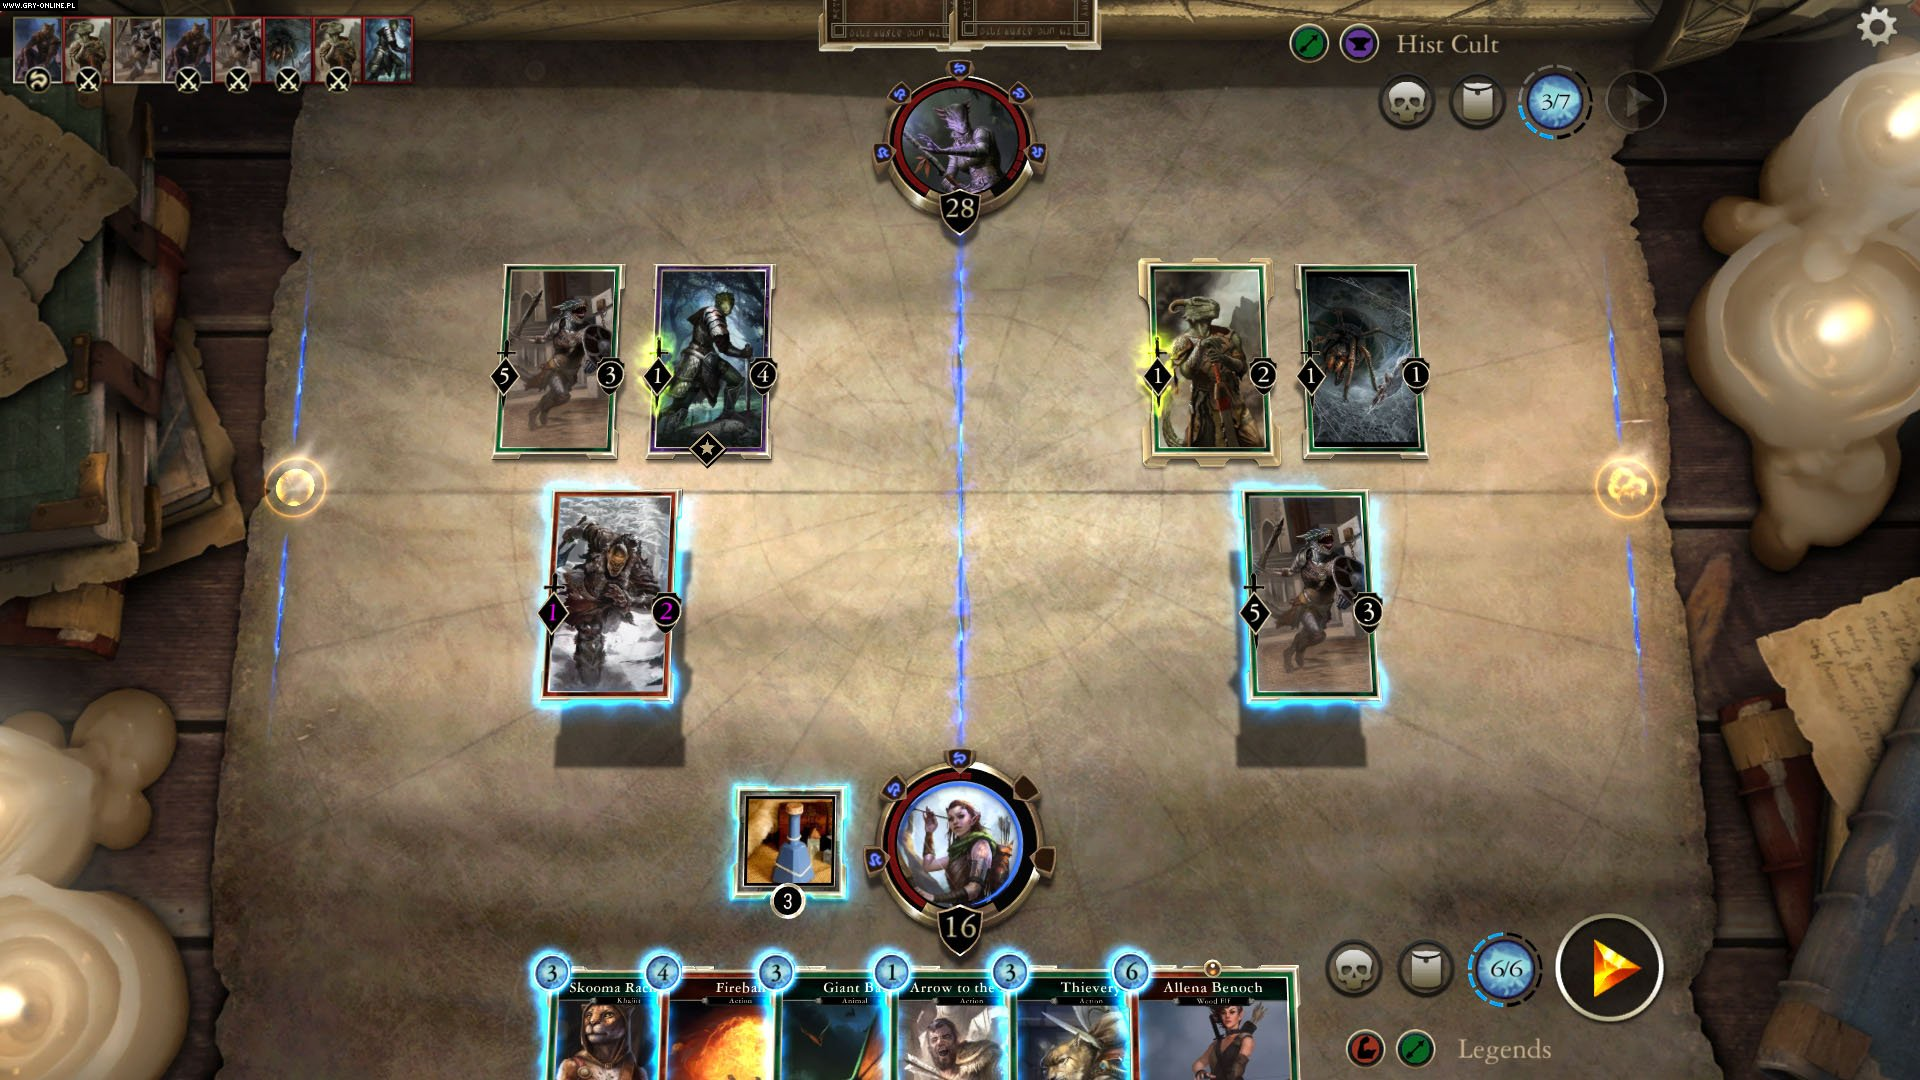 The Elder Scrolls: Legends PC, iOS Games Image 4/6, Bethesda Softworks